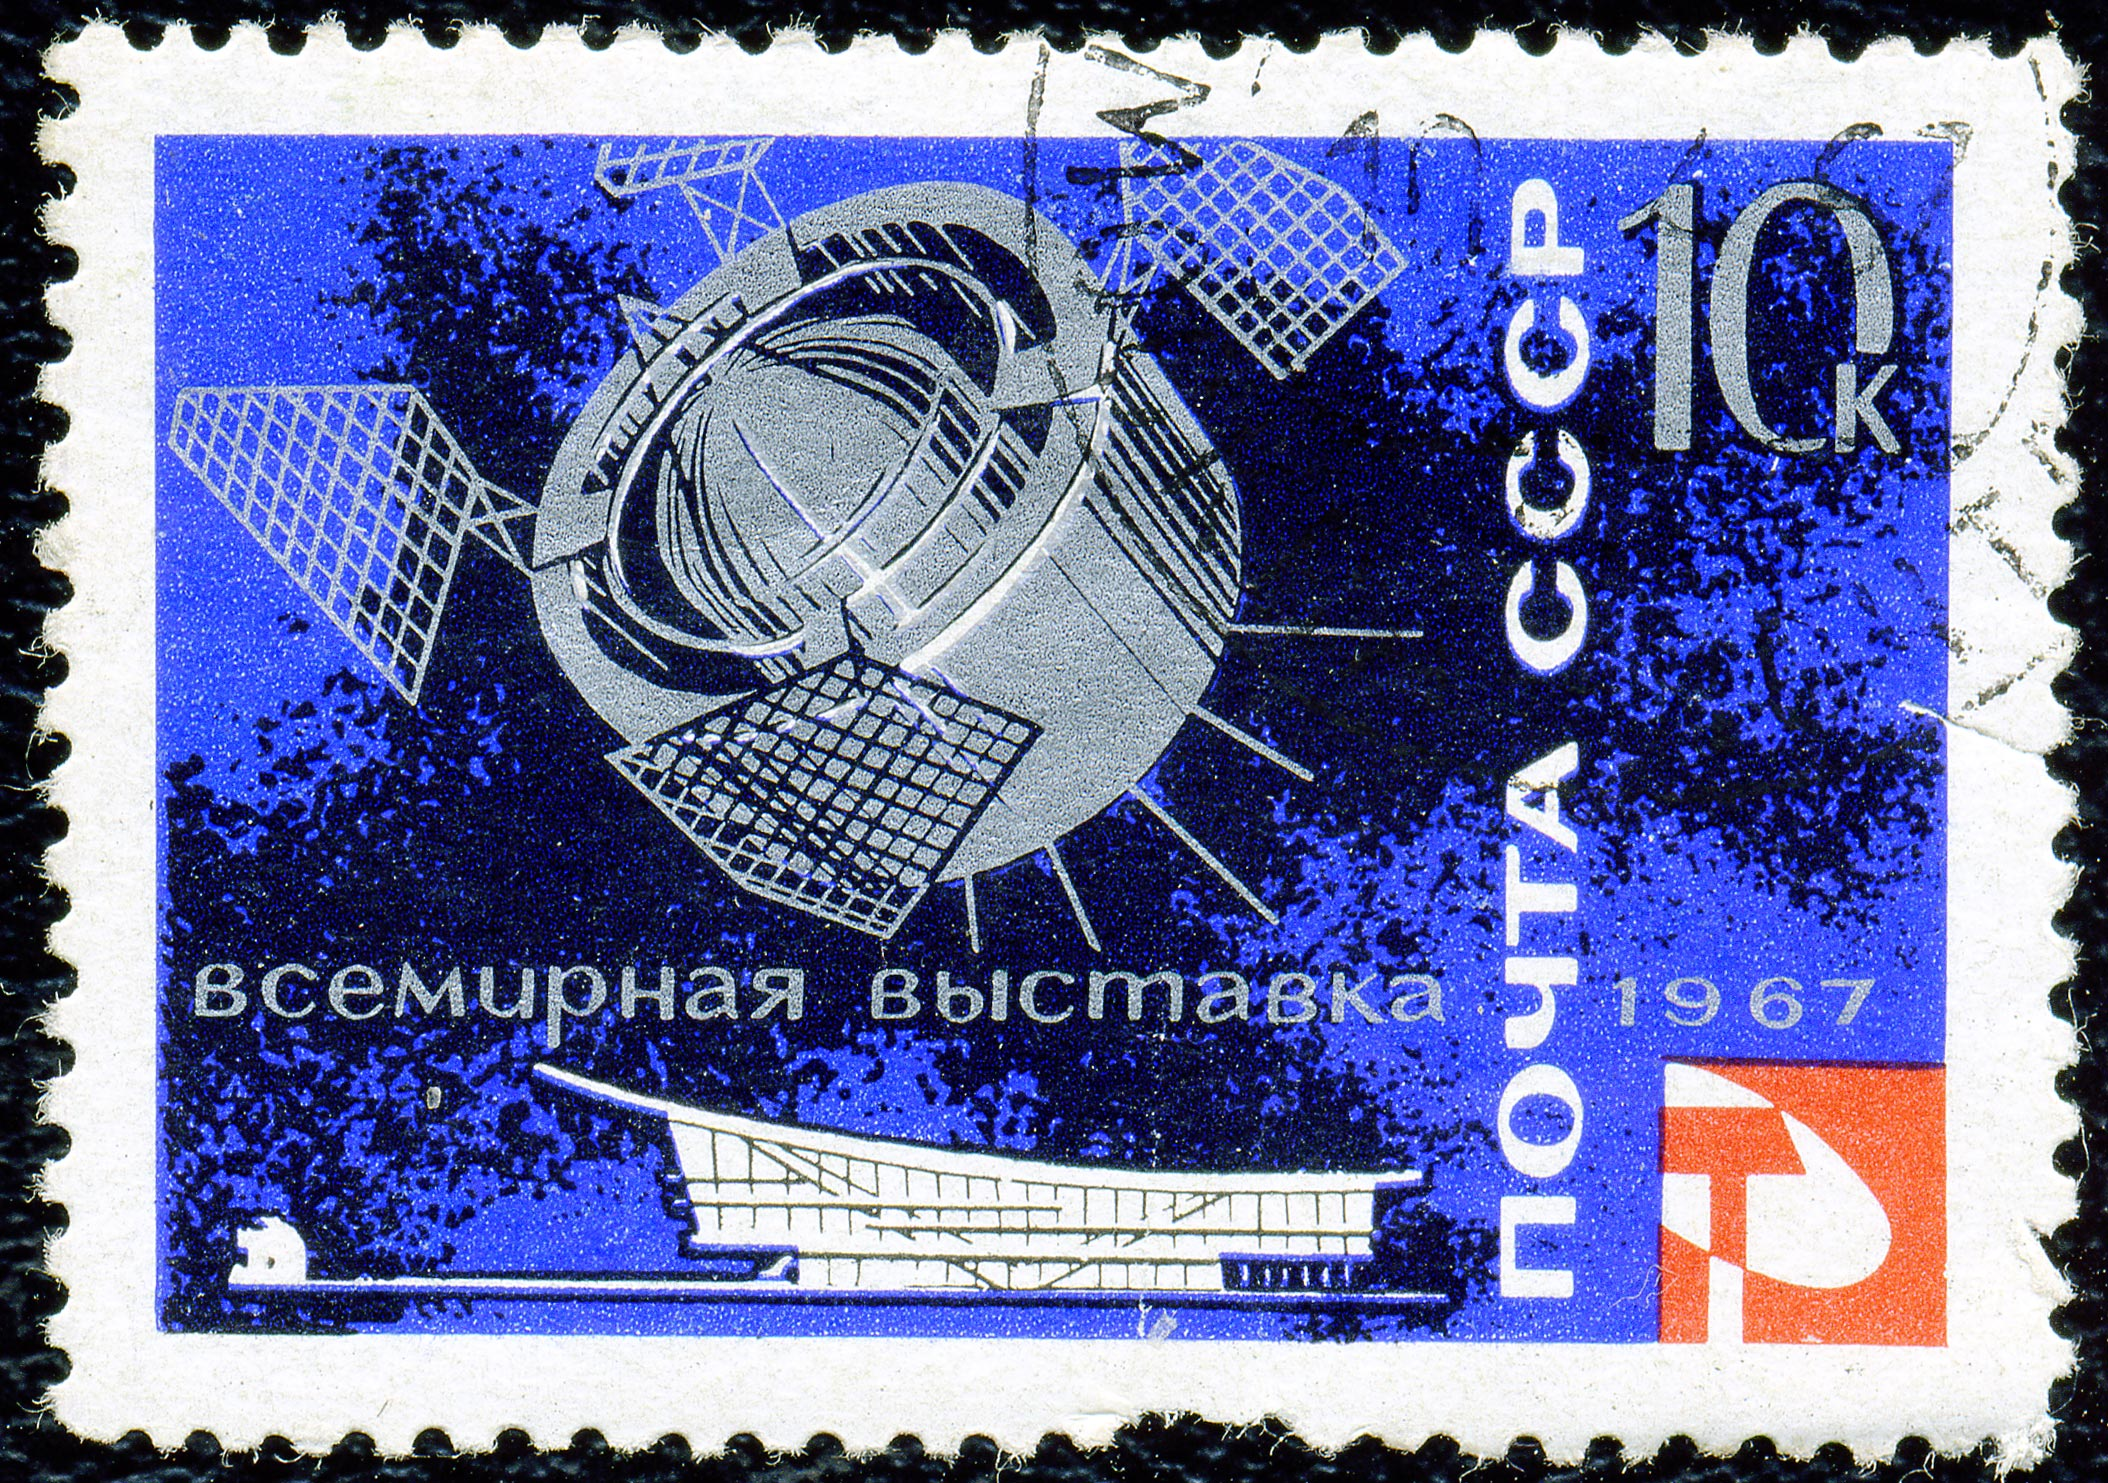 Art - Stamp Art - Russia - Sputnik - USSR 1967 - Satellite